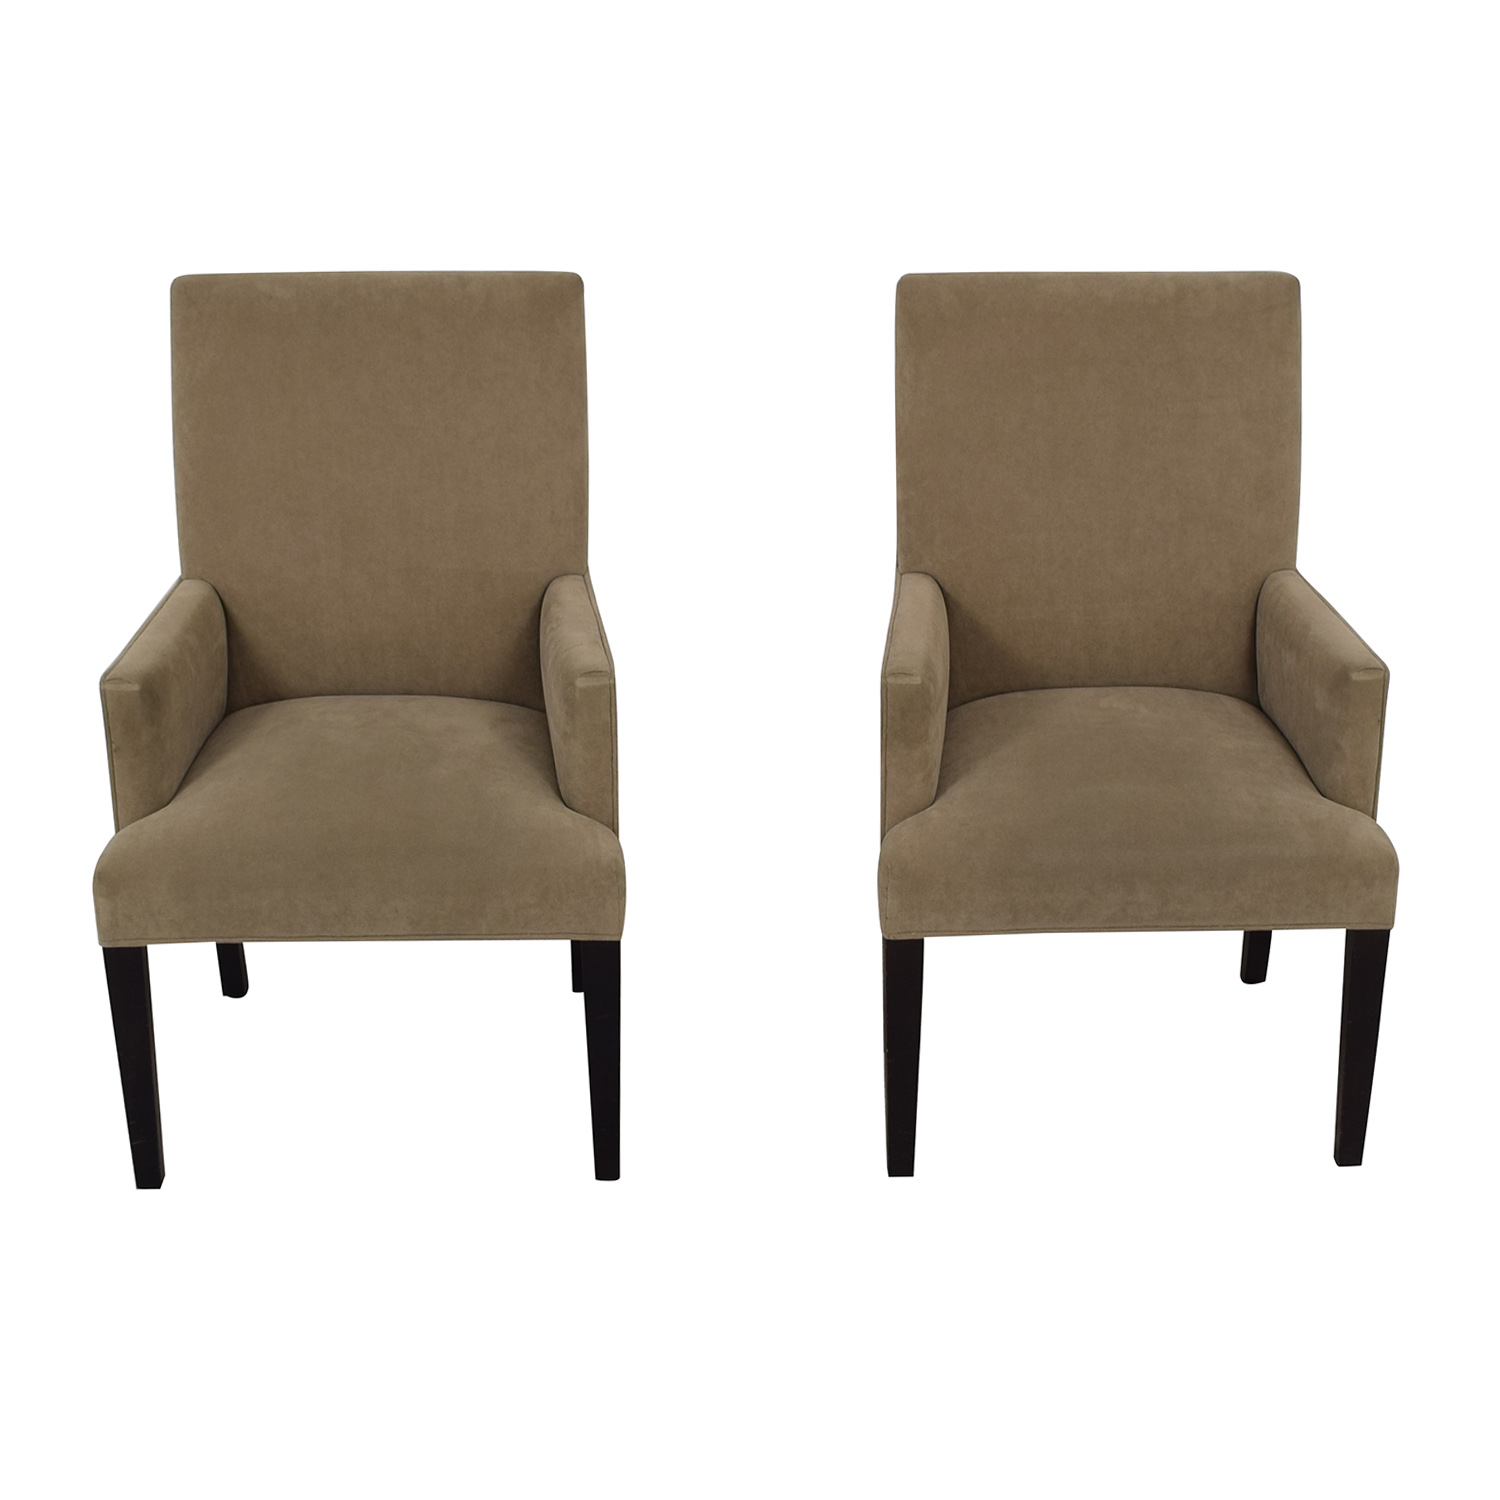 buy Crate & Barrel Crate & Barrel Tan Dining Chairs online